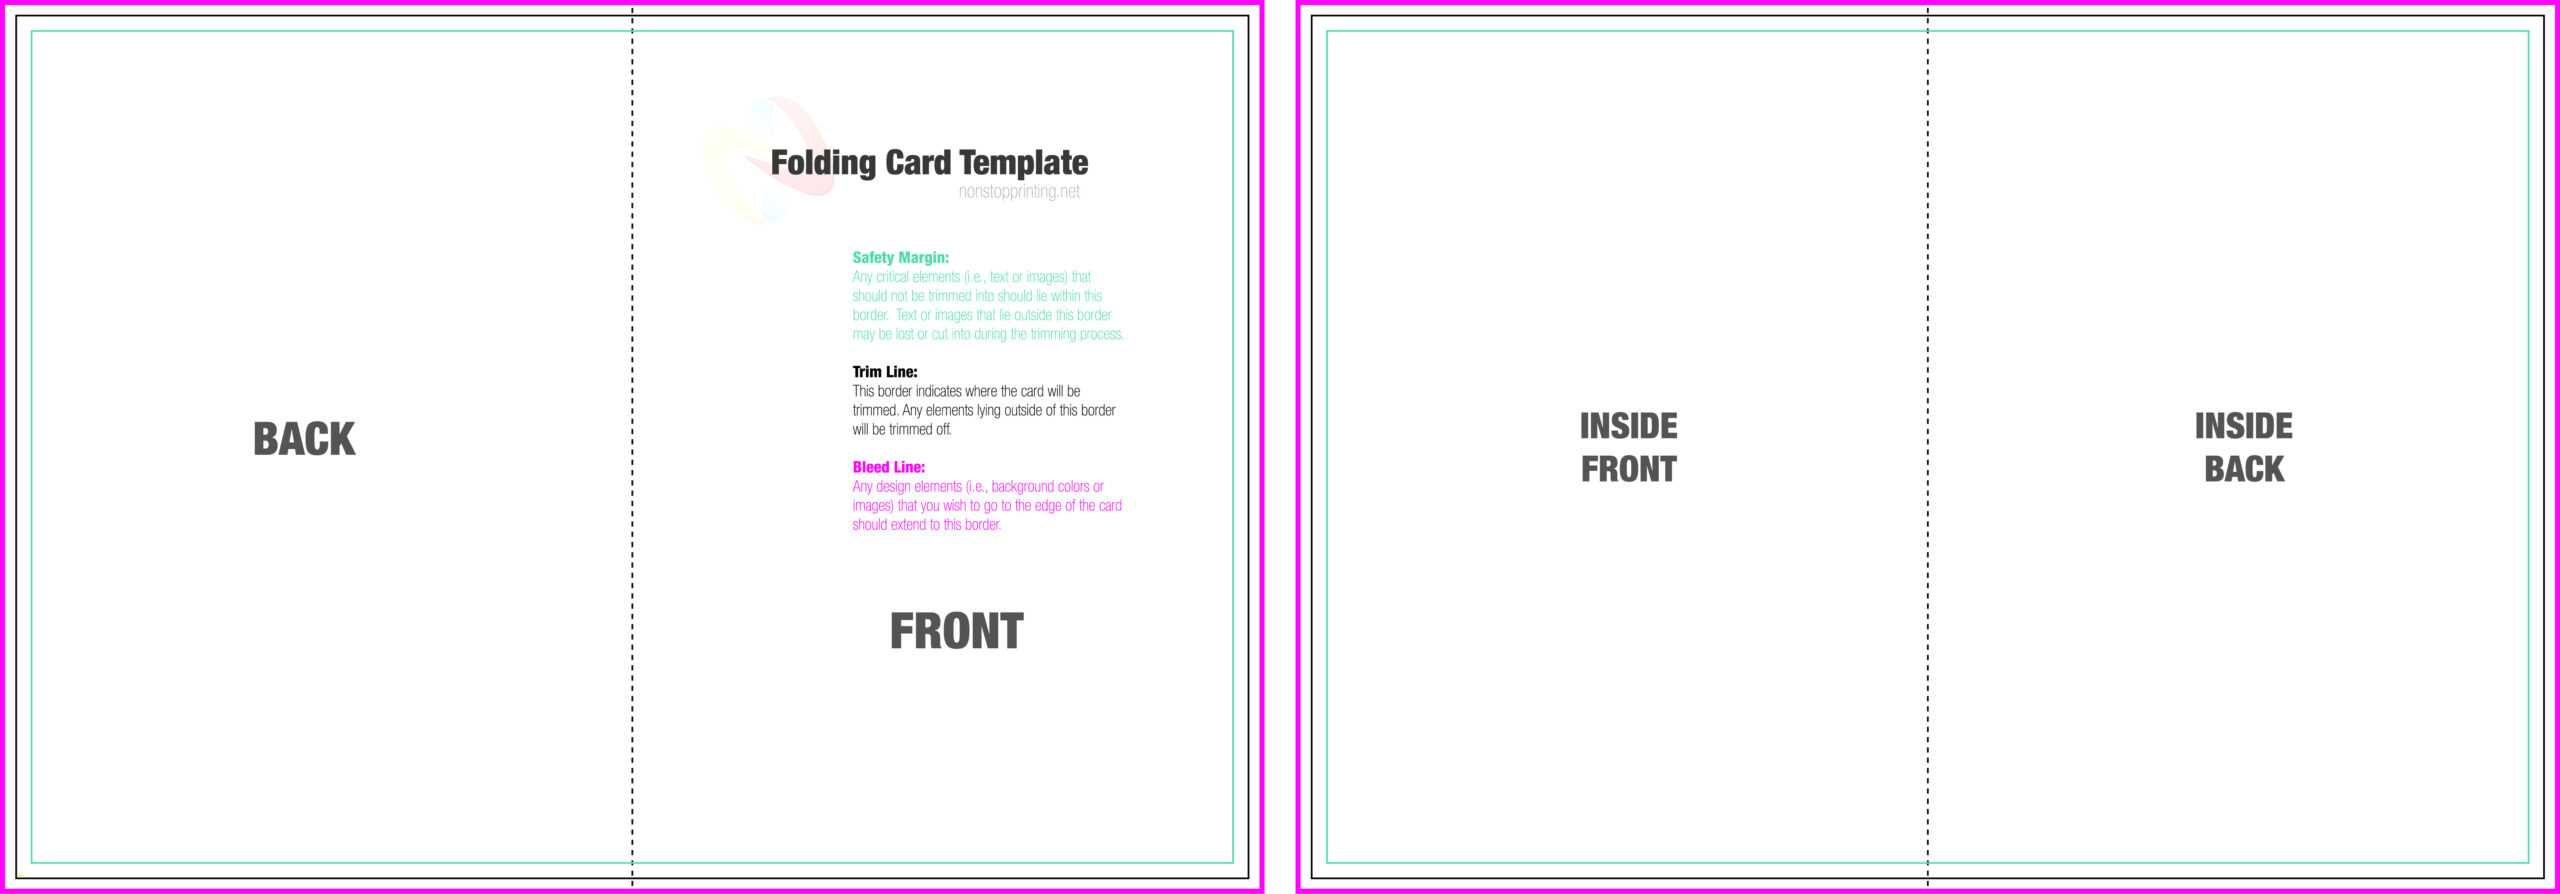 004 Blank Quarter Fold Card Template Free Ideas Greeting pertaining to Card Folding Templates Free